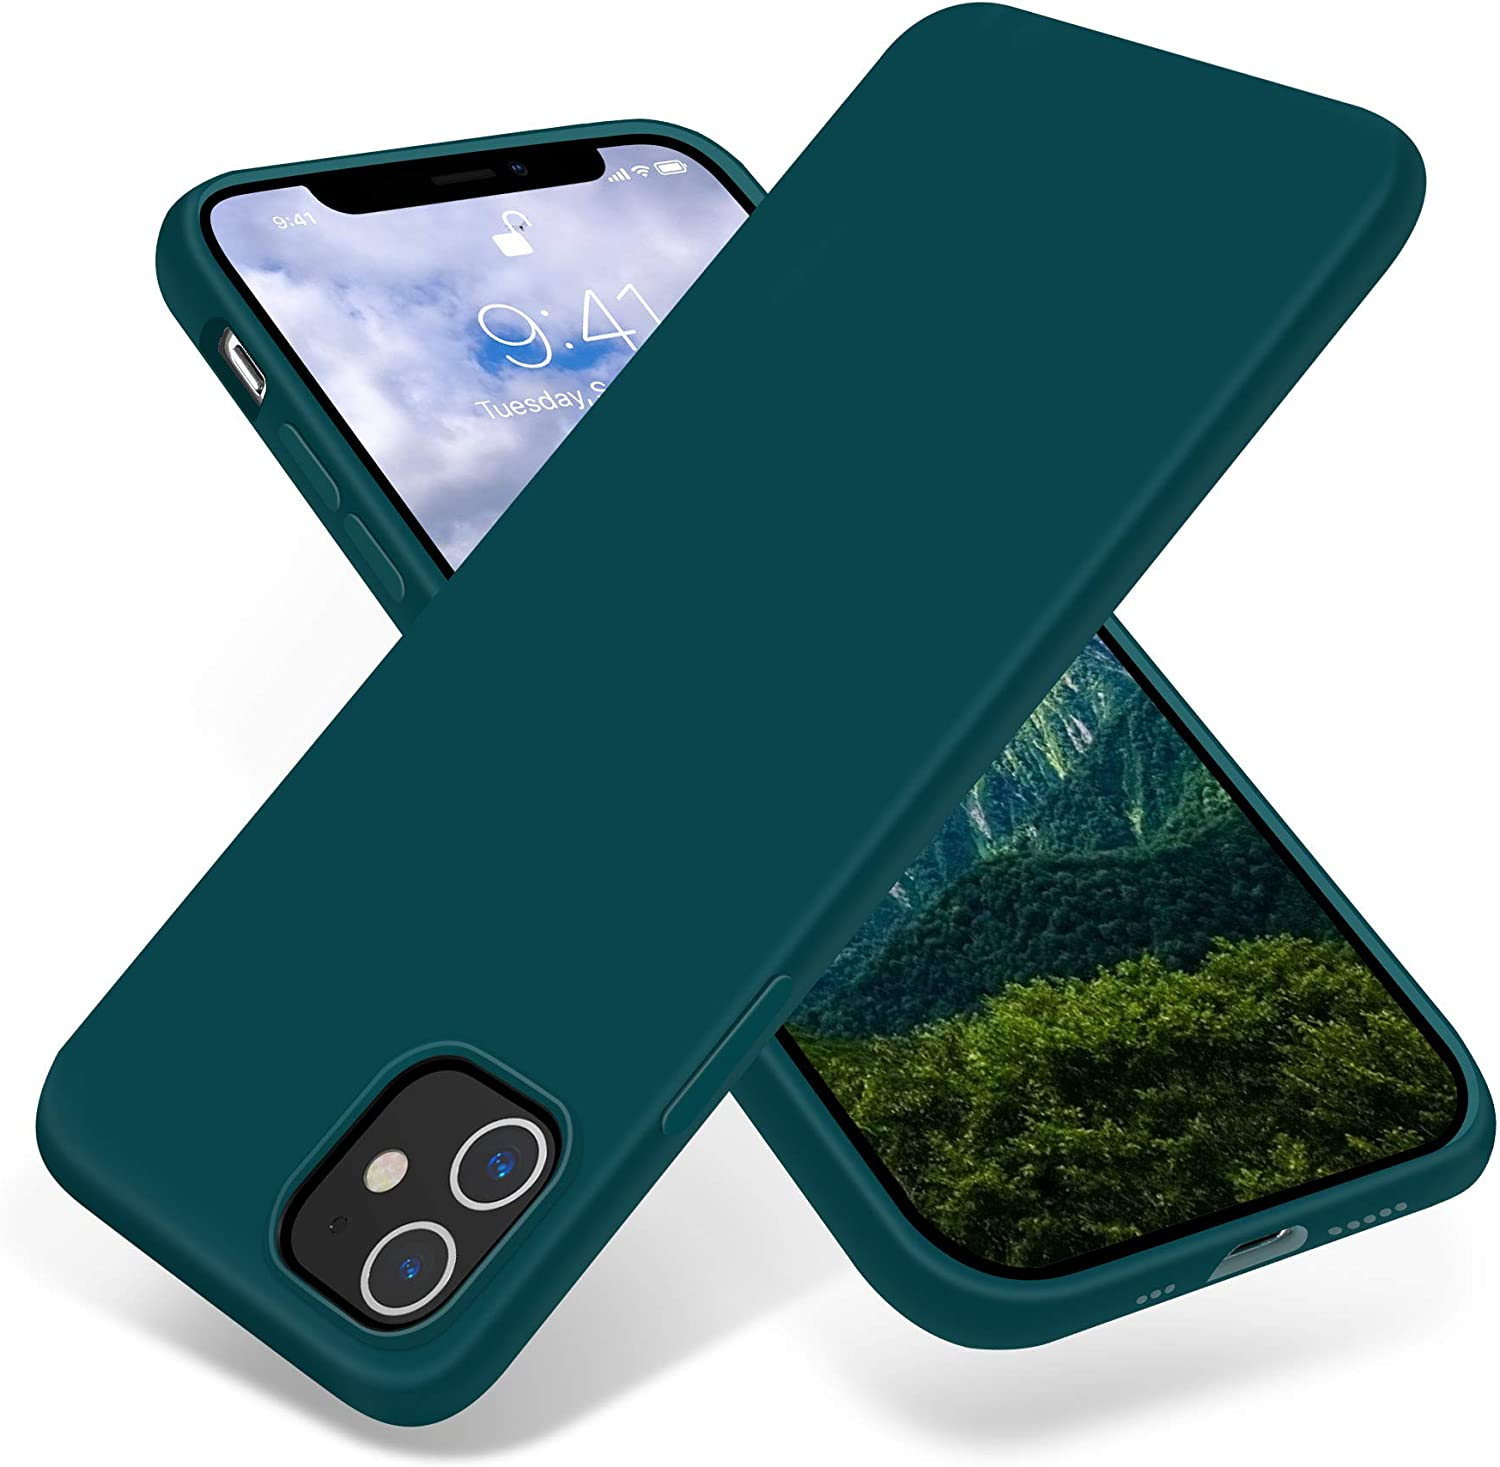 JELE Compatible with iPhone 12 Case and iPhone 12 Pro Case 6.1 inch(2020),Premium Soft Liquid Silicone Rubber Full-Body Protective Anti-Scratch Shockproof Bumper Case (Teal)